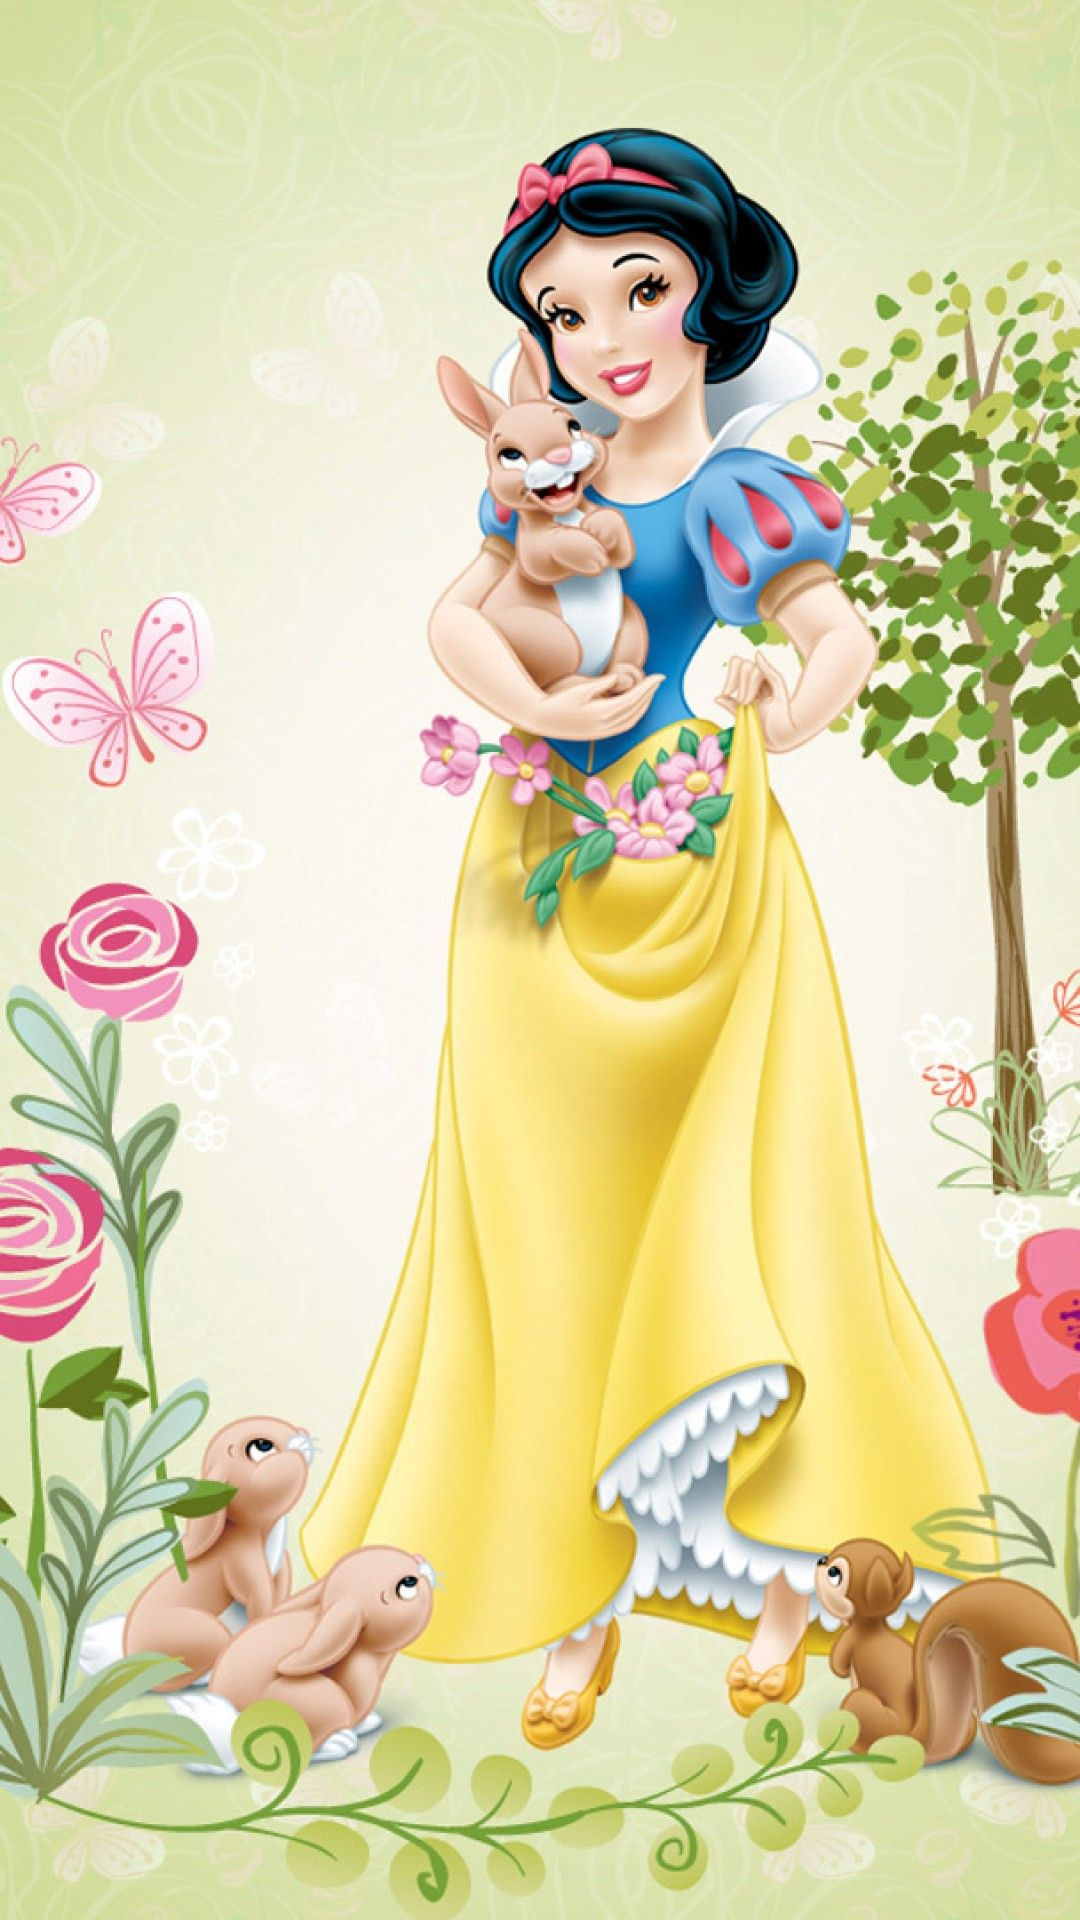 Disney Princess Wallpapers 1080p Hupages Download Iphone Wallpapers Disney Princess Wallpaper Disney Princess Snow White Snow White Disney